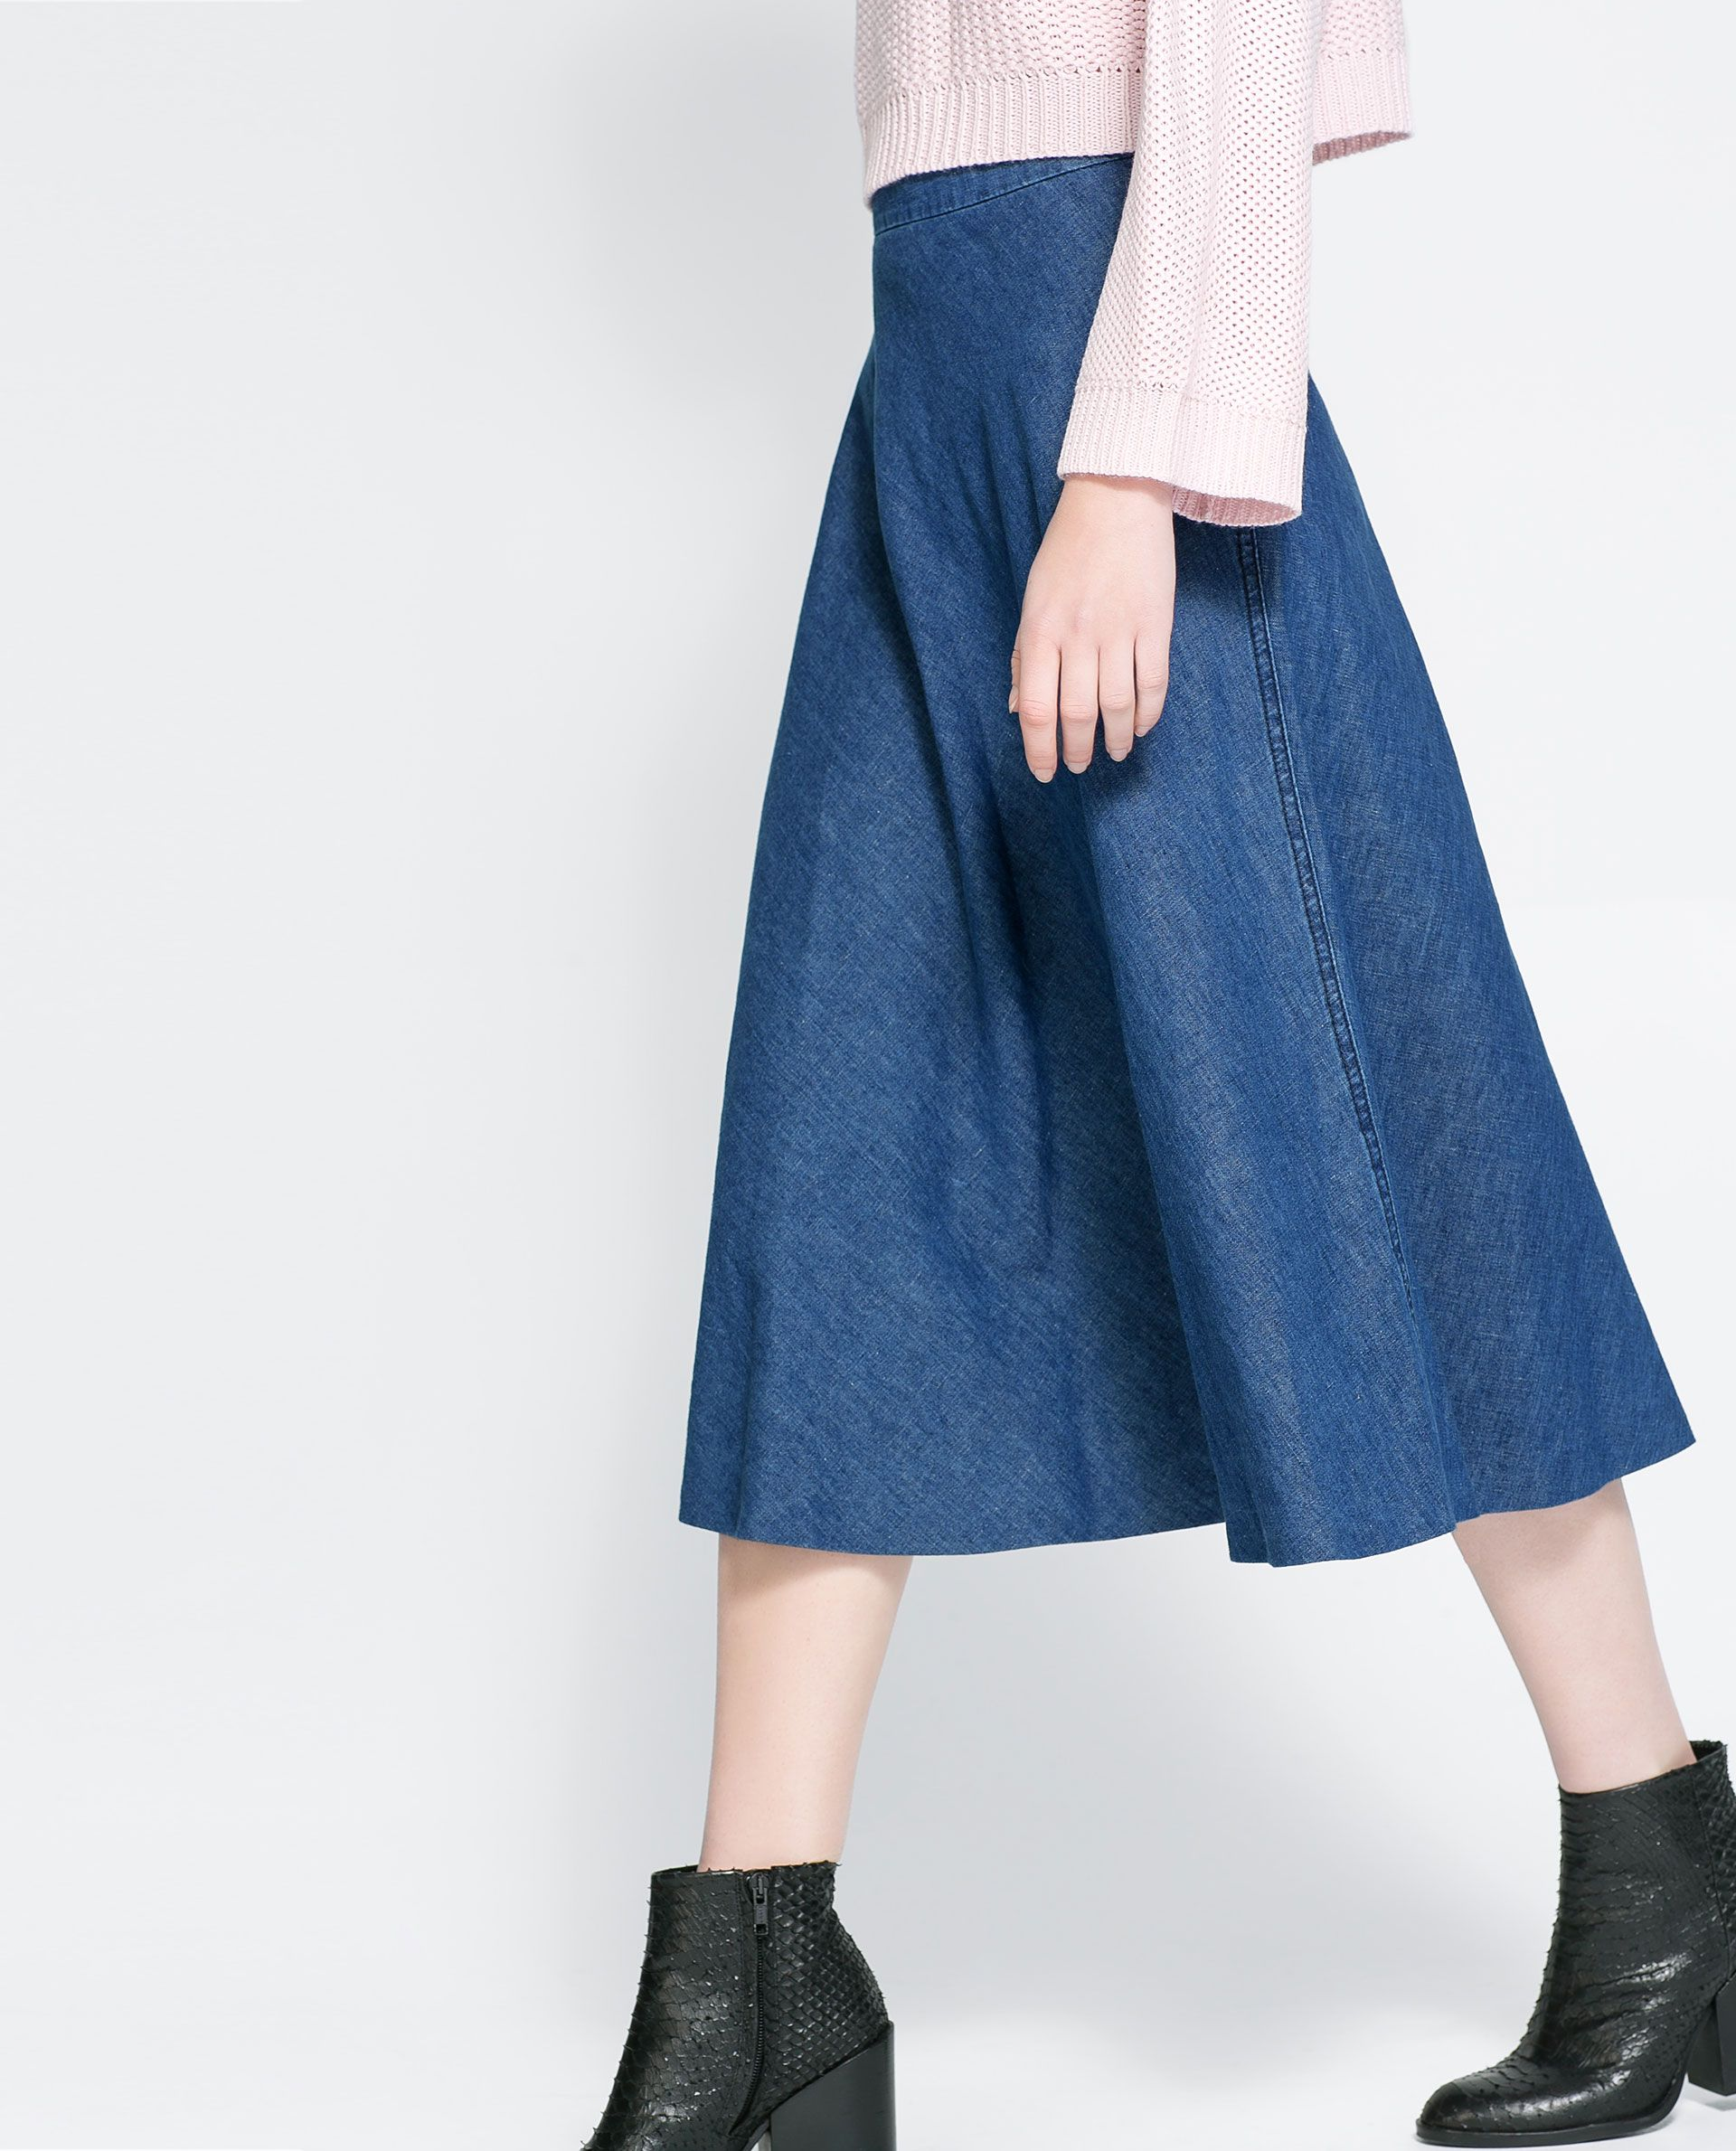 Zara A-line denim skirt below knee lenght | wear // fw | Pinterest ...